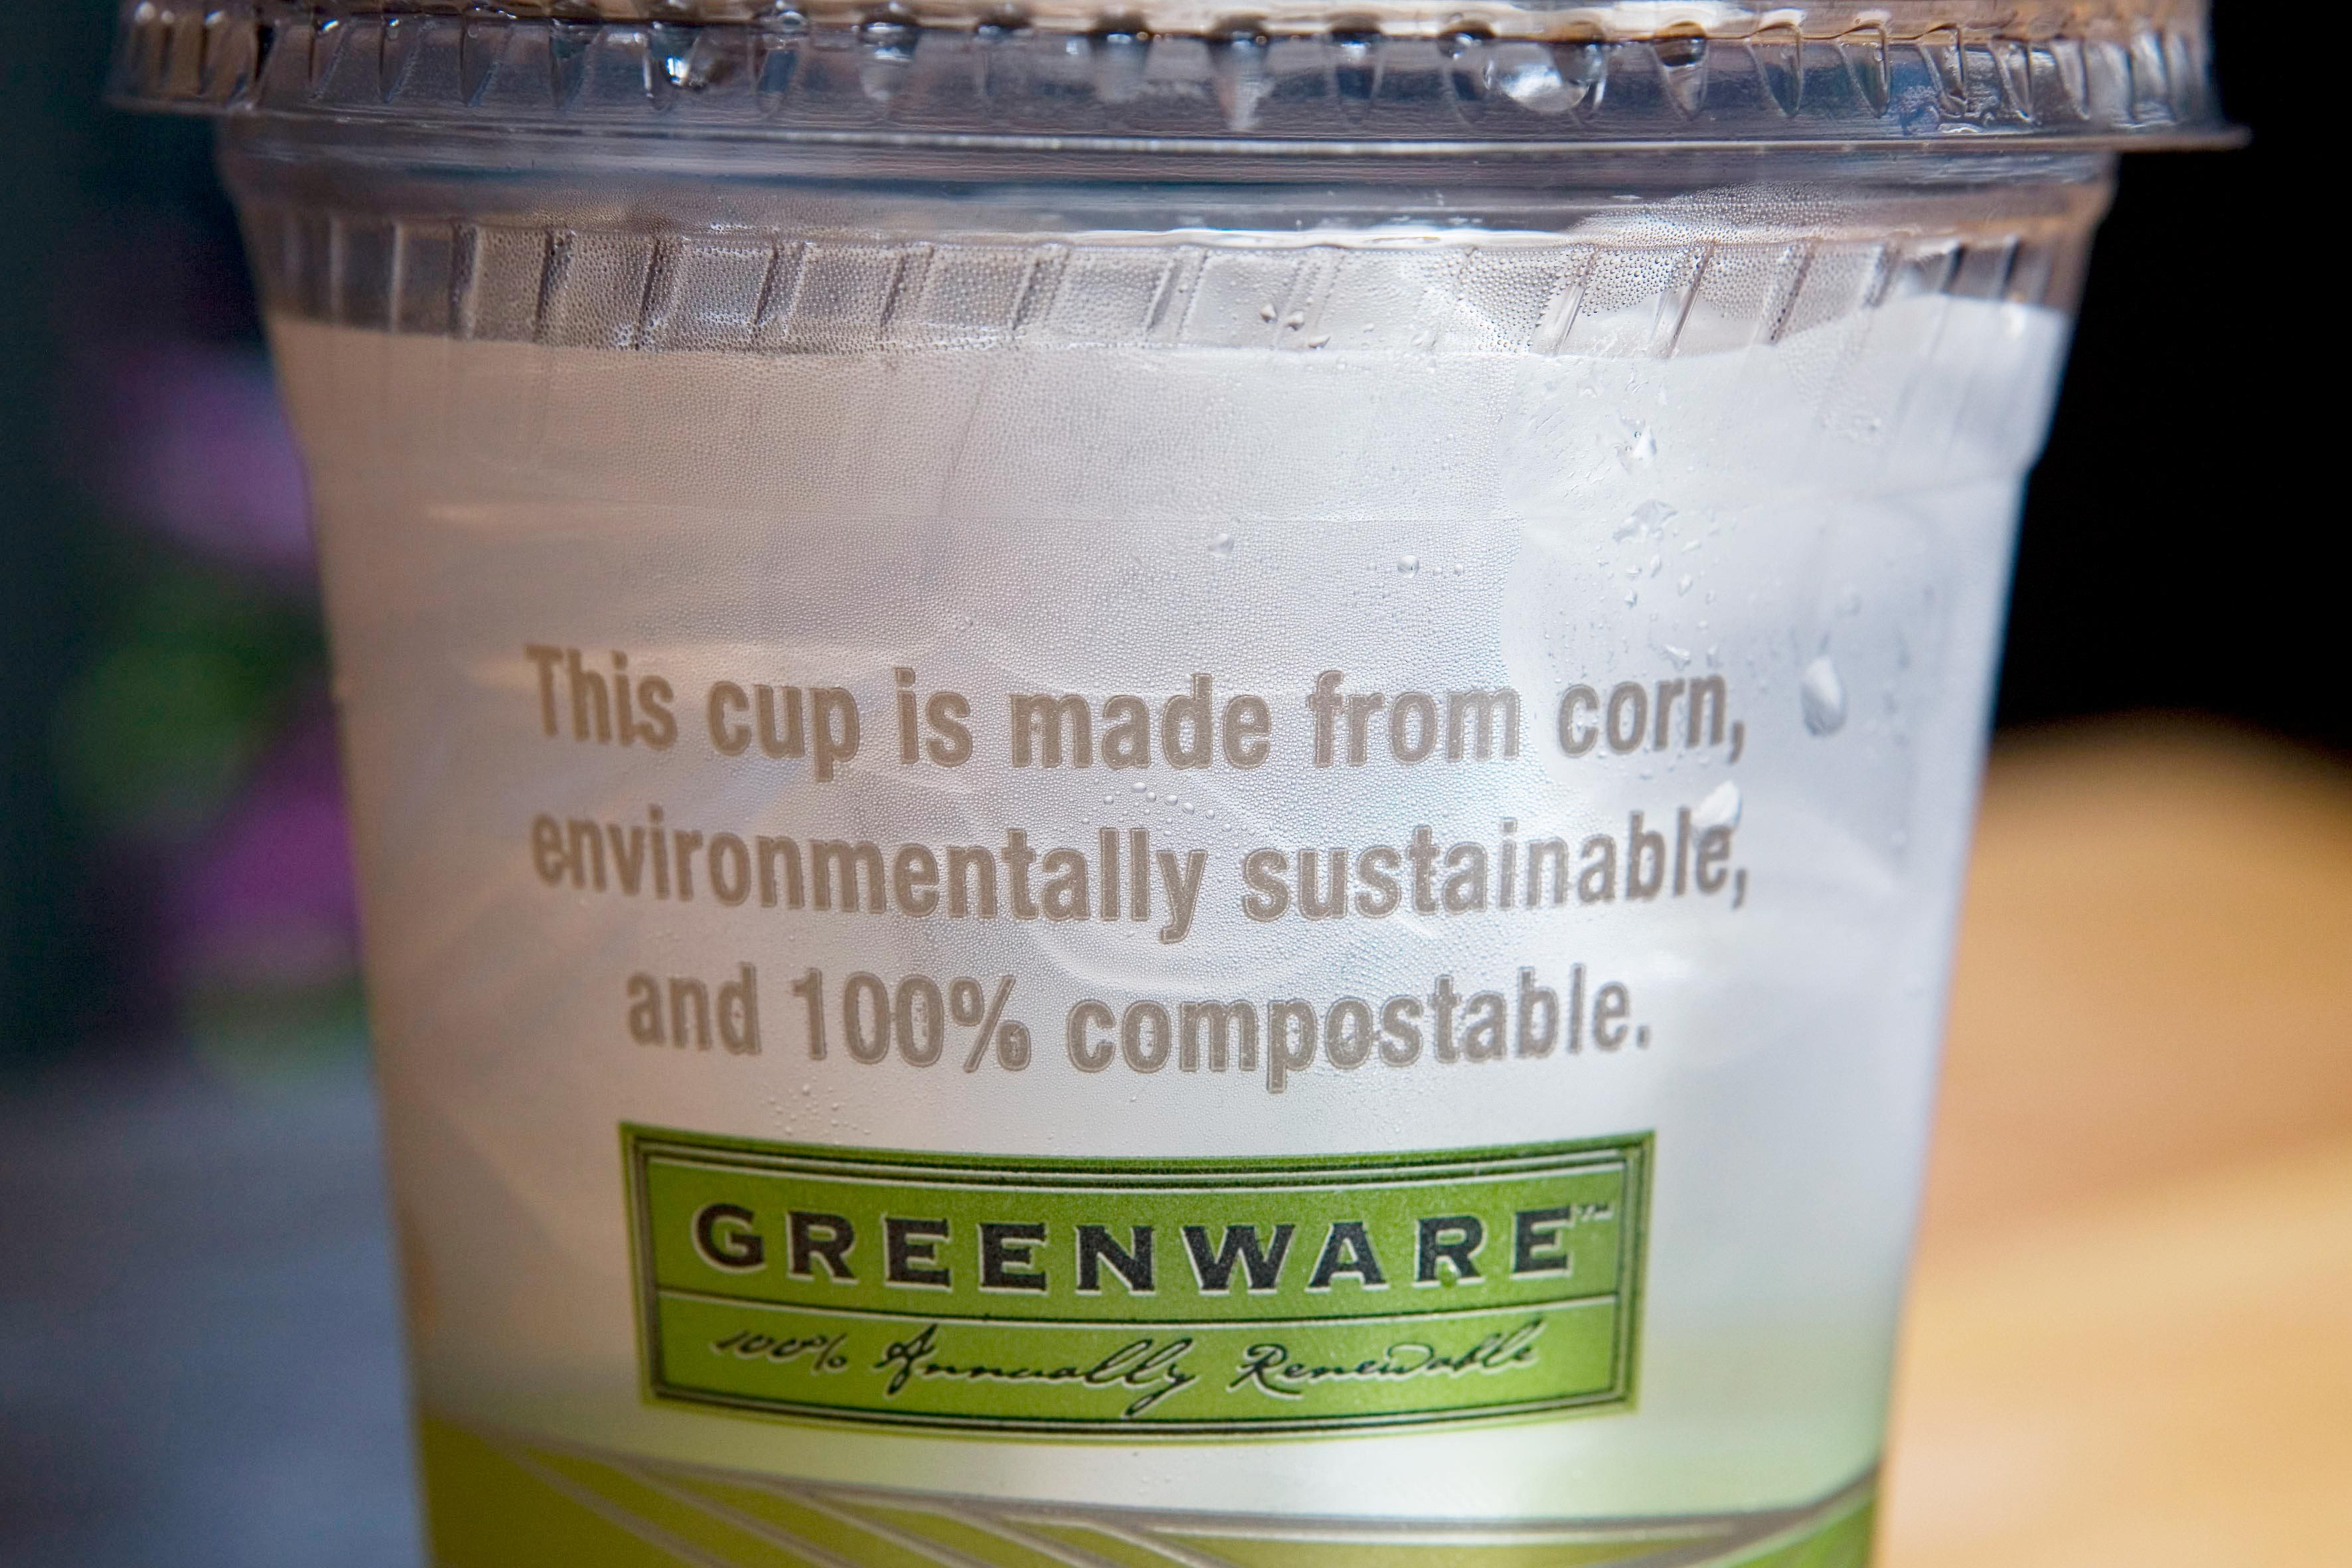 greenware compostable plastic cup